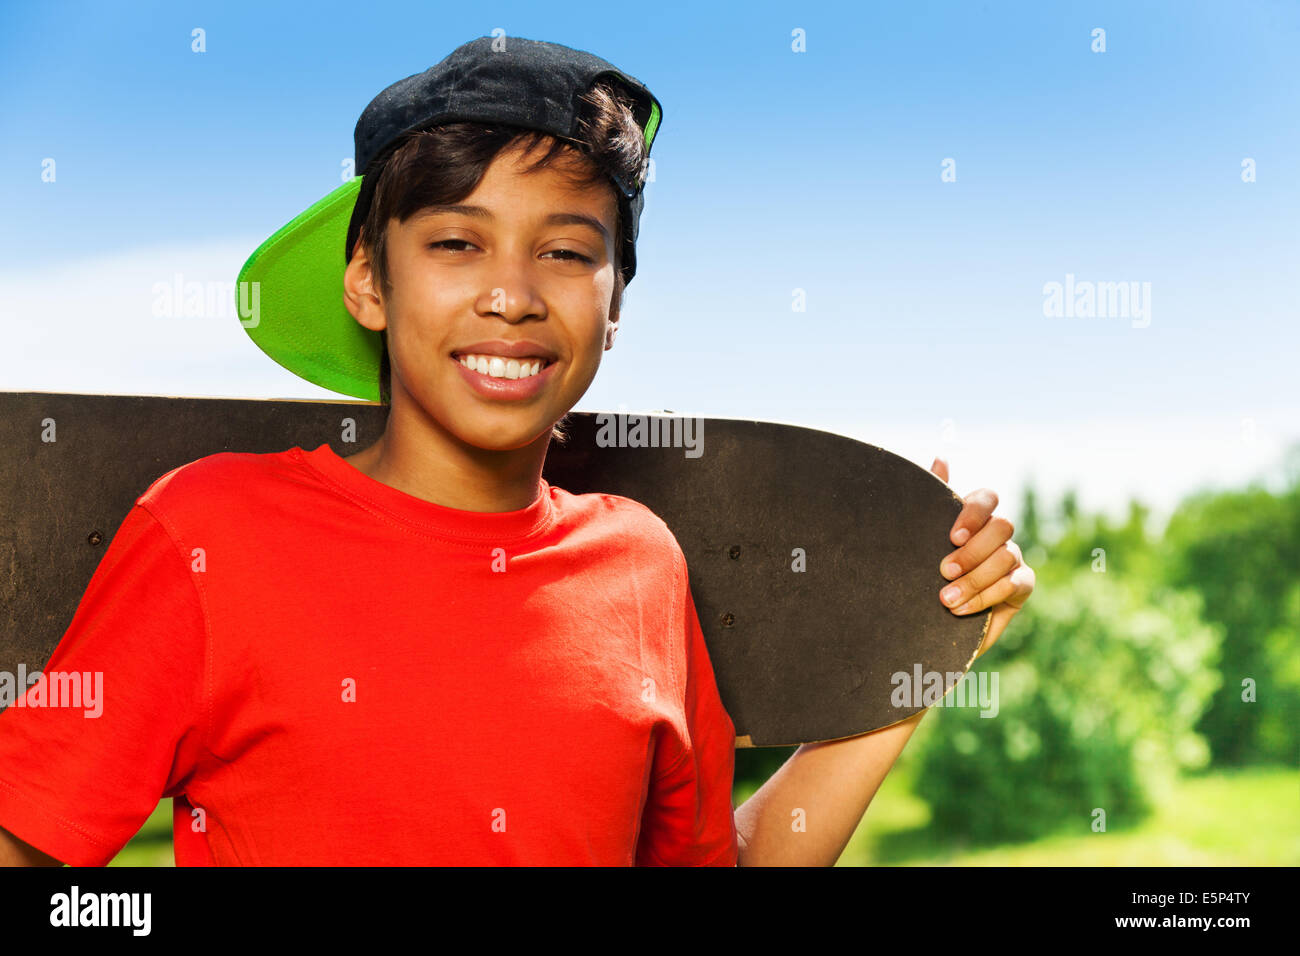 Cool boy in cap and with skateboard portrait stock photo royalty free image 72401531 alamy - Cool boys photo ...